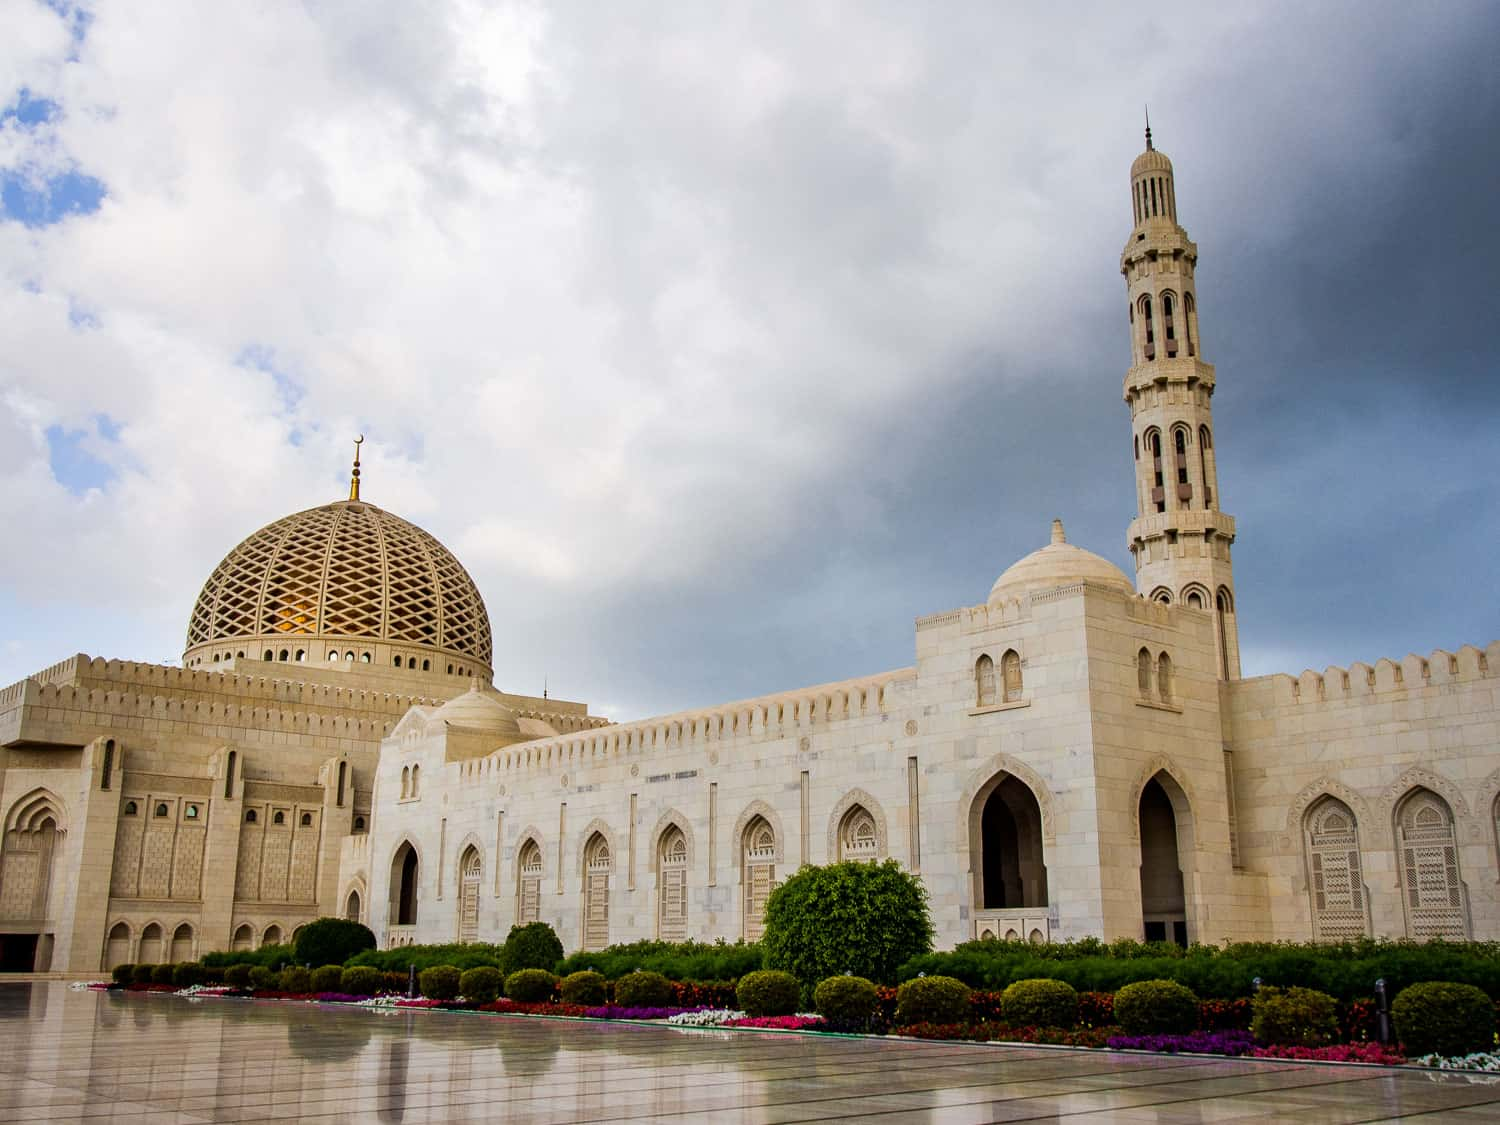 The Sultan Qaboos Grand Mosque in Muscat, a highlight of any Oman itinerary